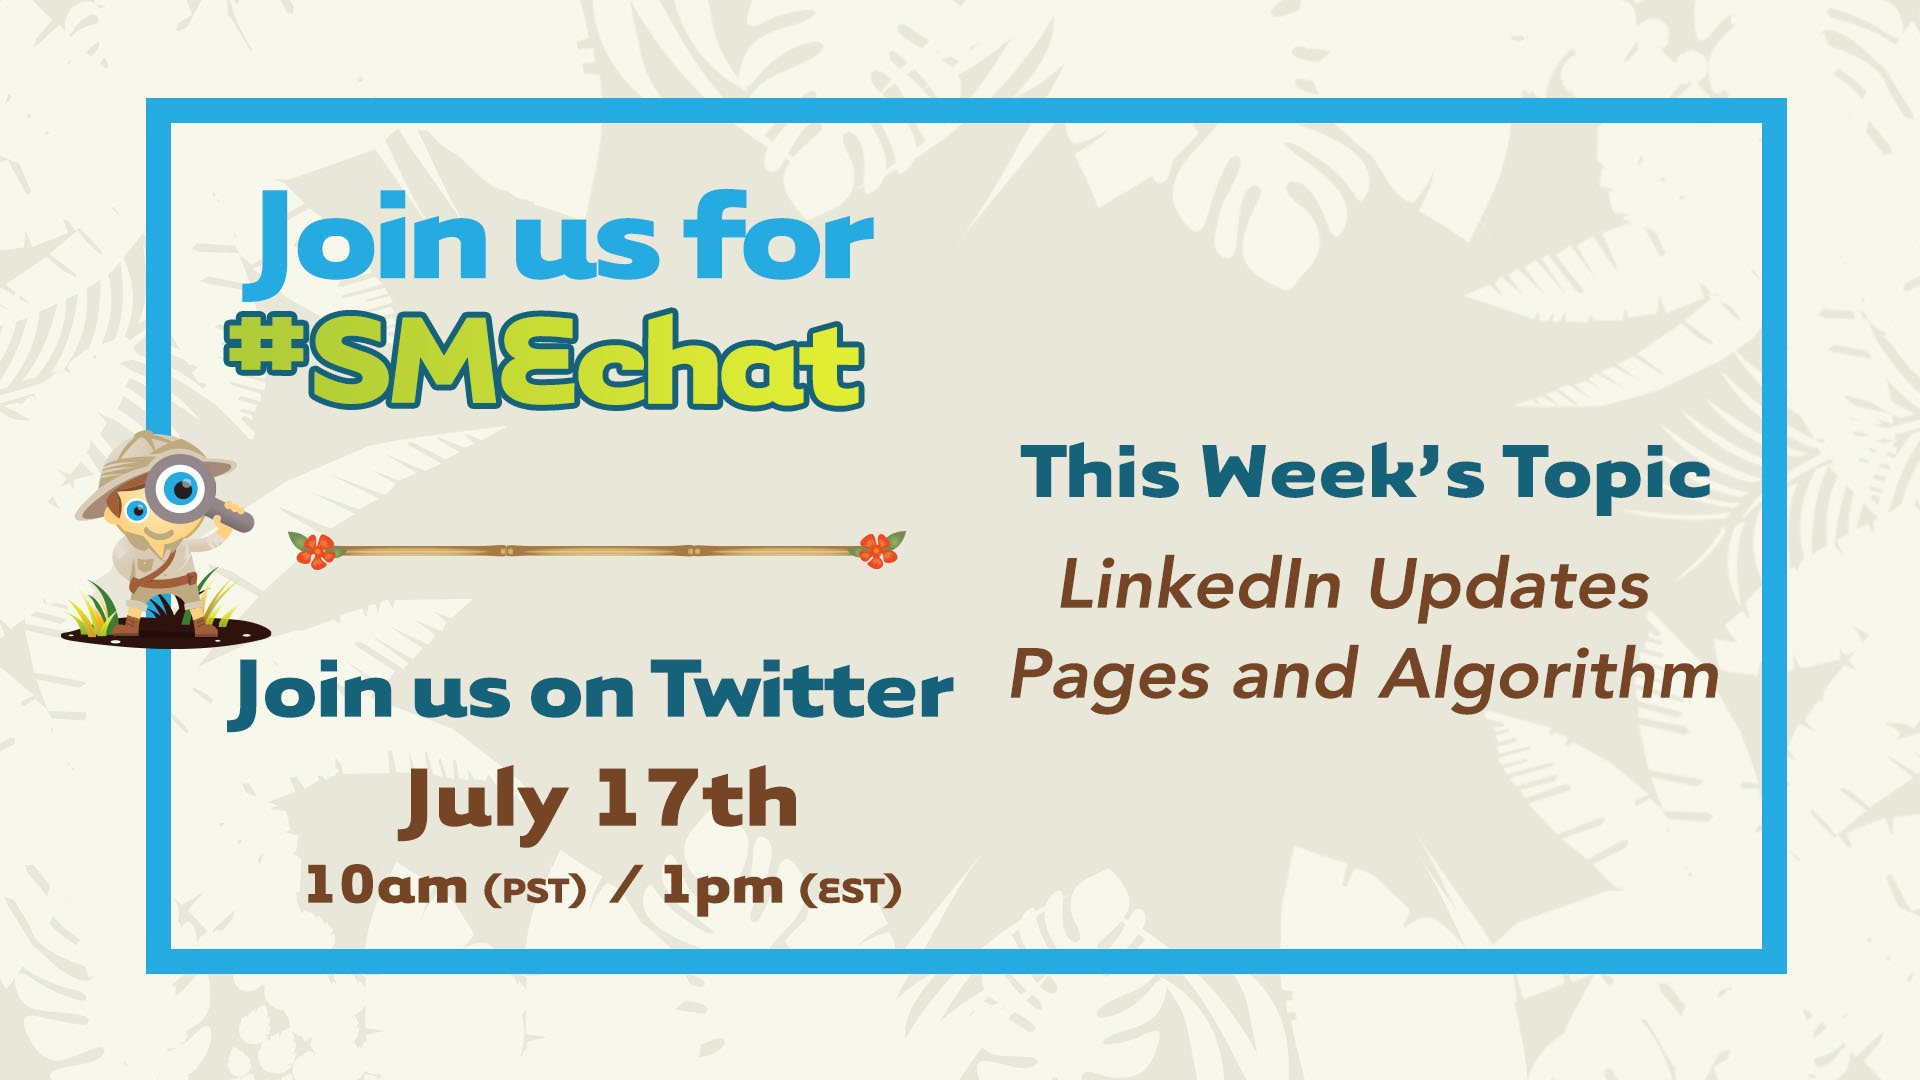 We're so excited for today's #smechat about @LinkedIn! We'll be talking about new CTA buttons on Pages as well as algorithm updates. Bring your friends and let's chat at 1pm ET/10am PST. See you then! -Jen https://t.co/H0spx9Z8ny